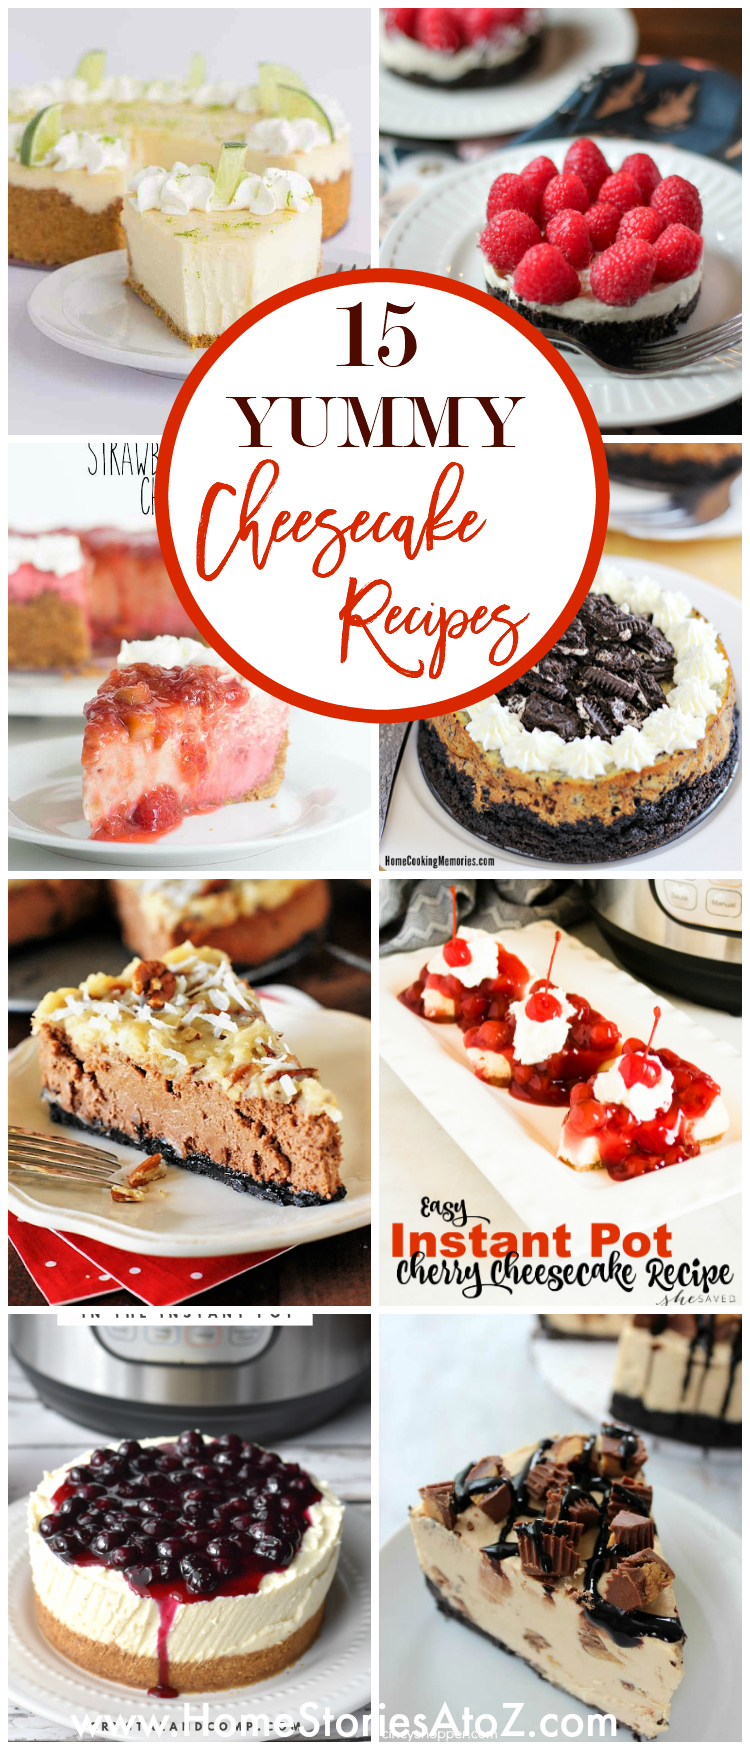 15 Yummy Cheesecake Recipes